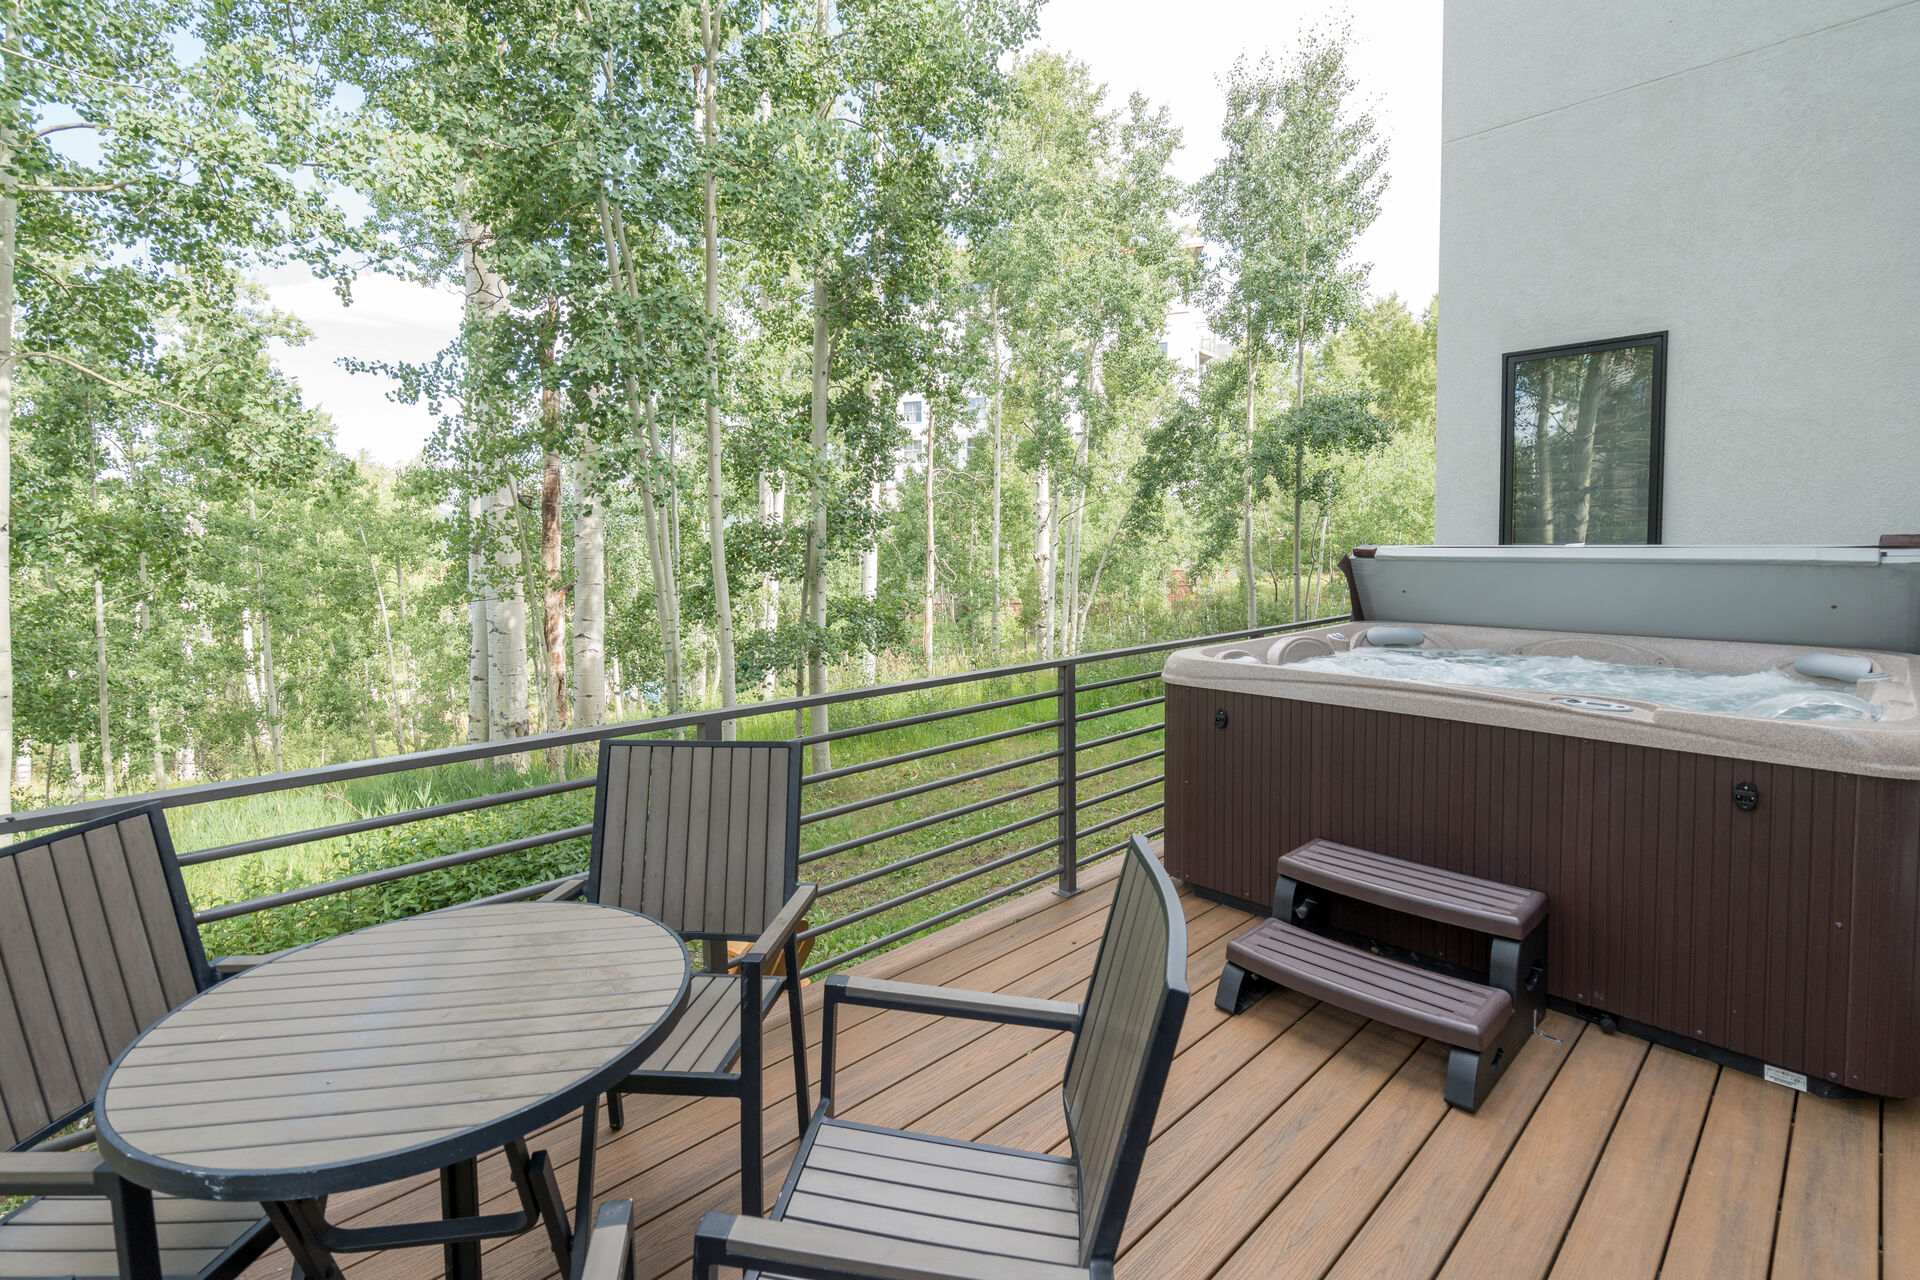 Deck with hot tub and outdoor seating